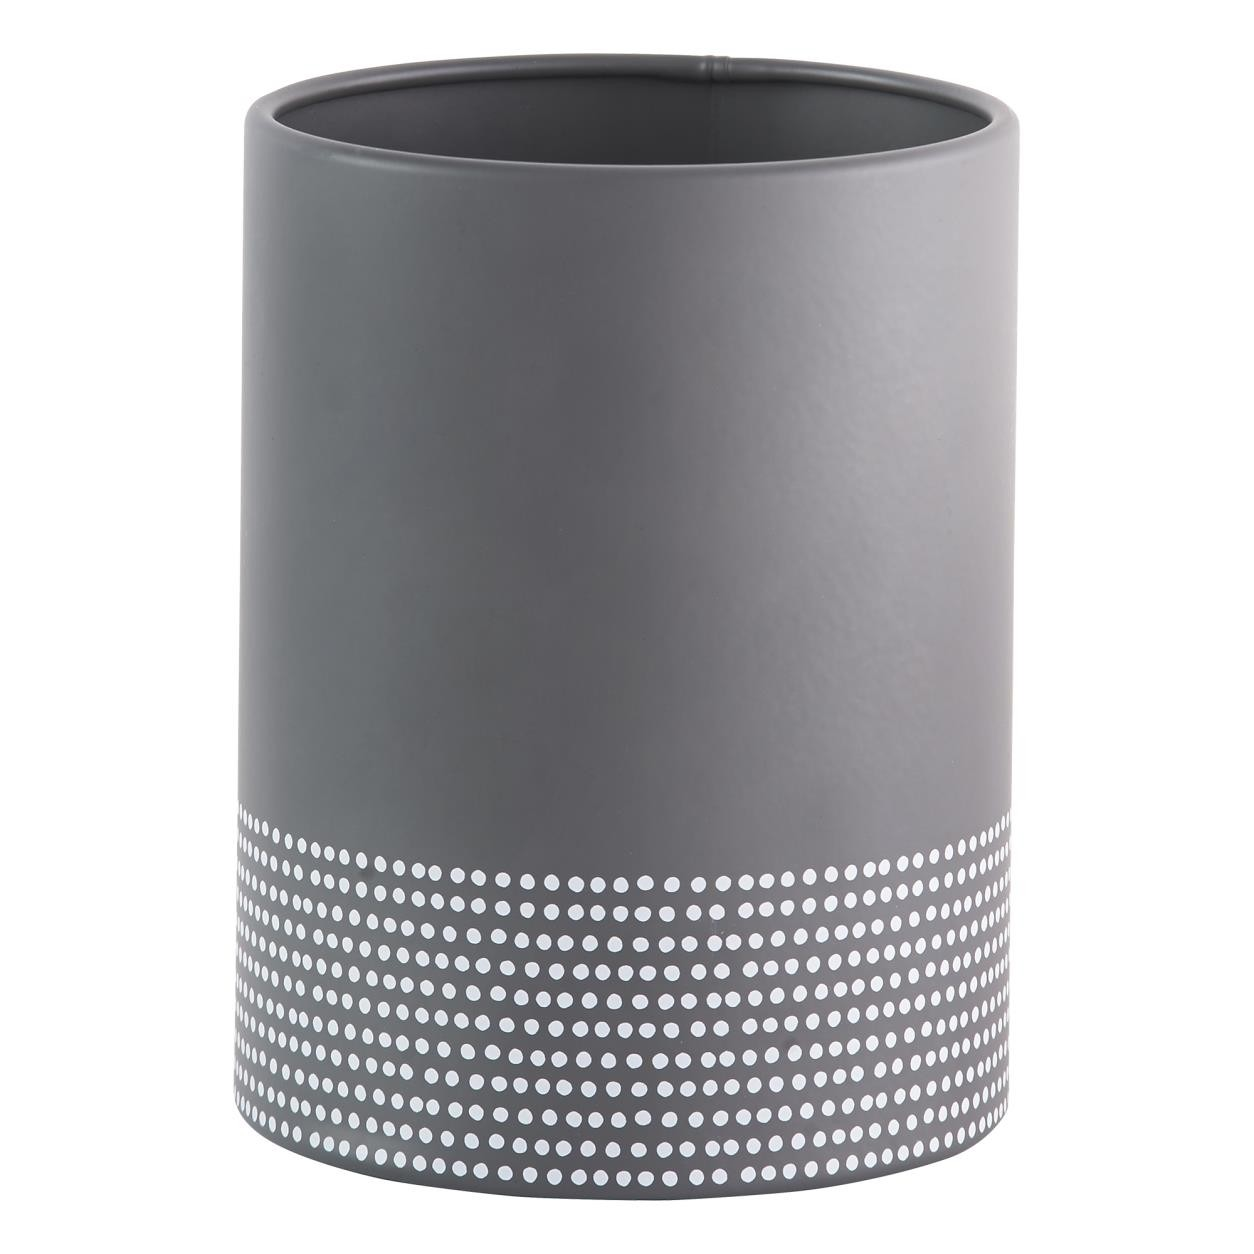 GREY MONOCHROME UTENSIL POT